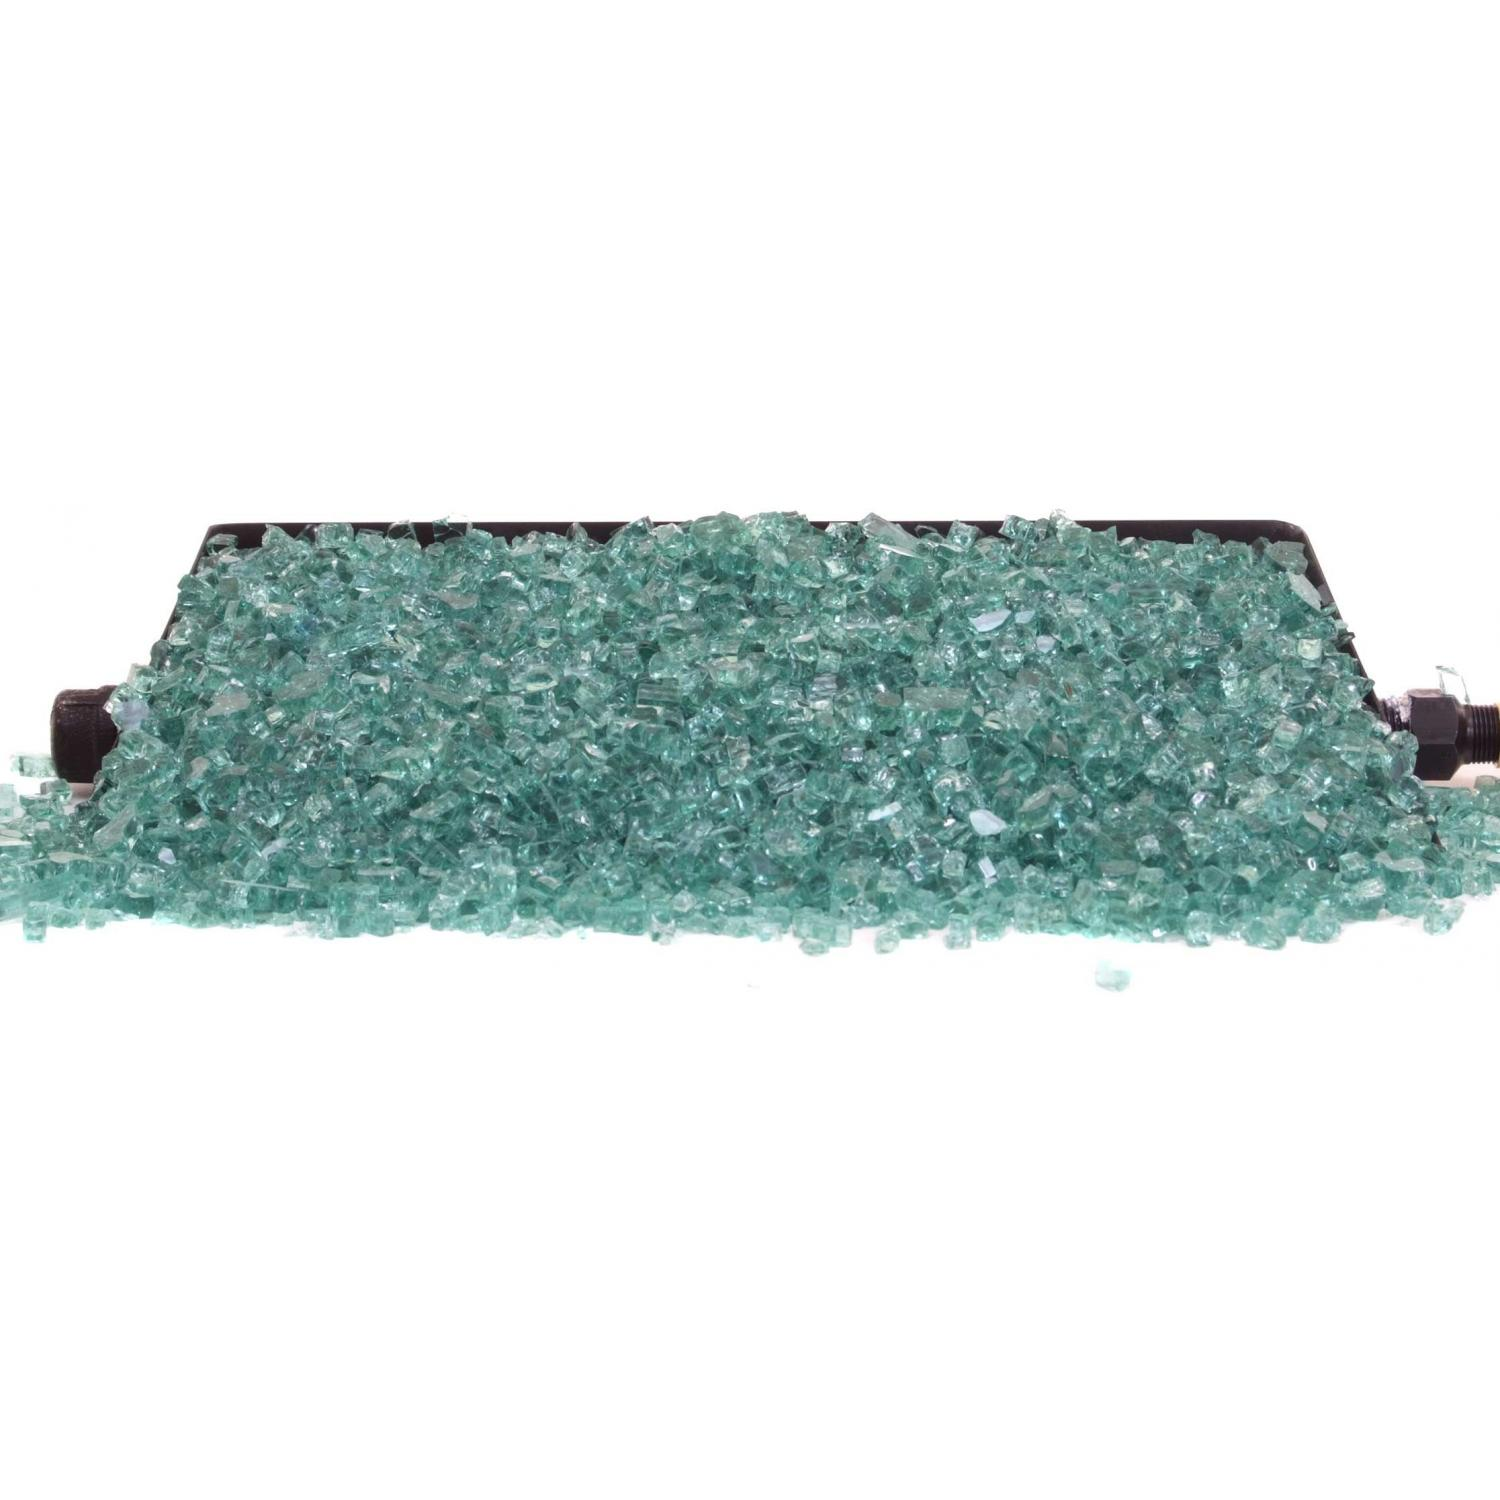 Peterson Real Fyre Peterson Fyre Glass 24 Inch Emerald Outdoor Fire Glass Set With Vented Natural Gas Stainless G45 Burner - Manual Safety Pilot at Sears.com